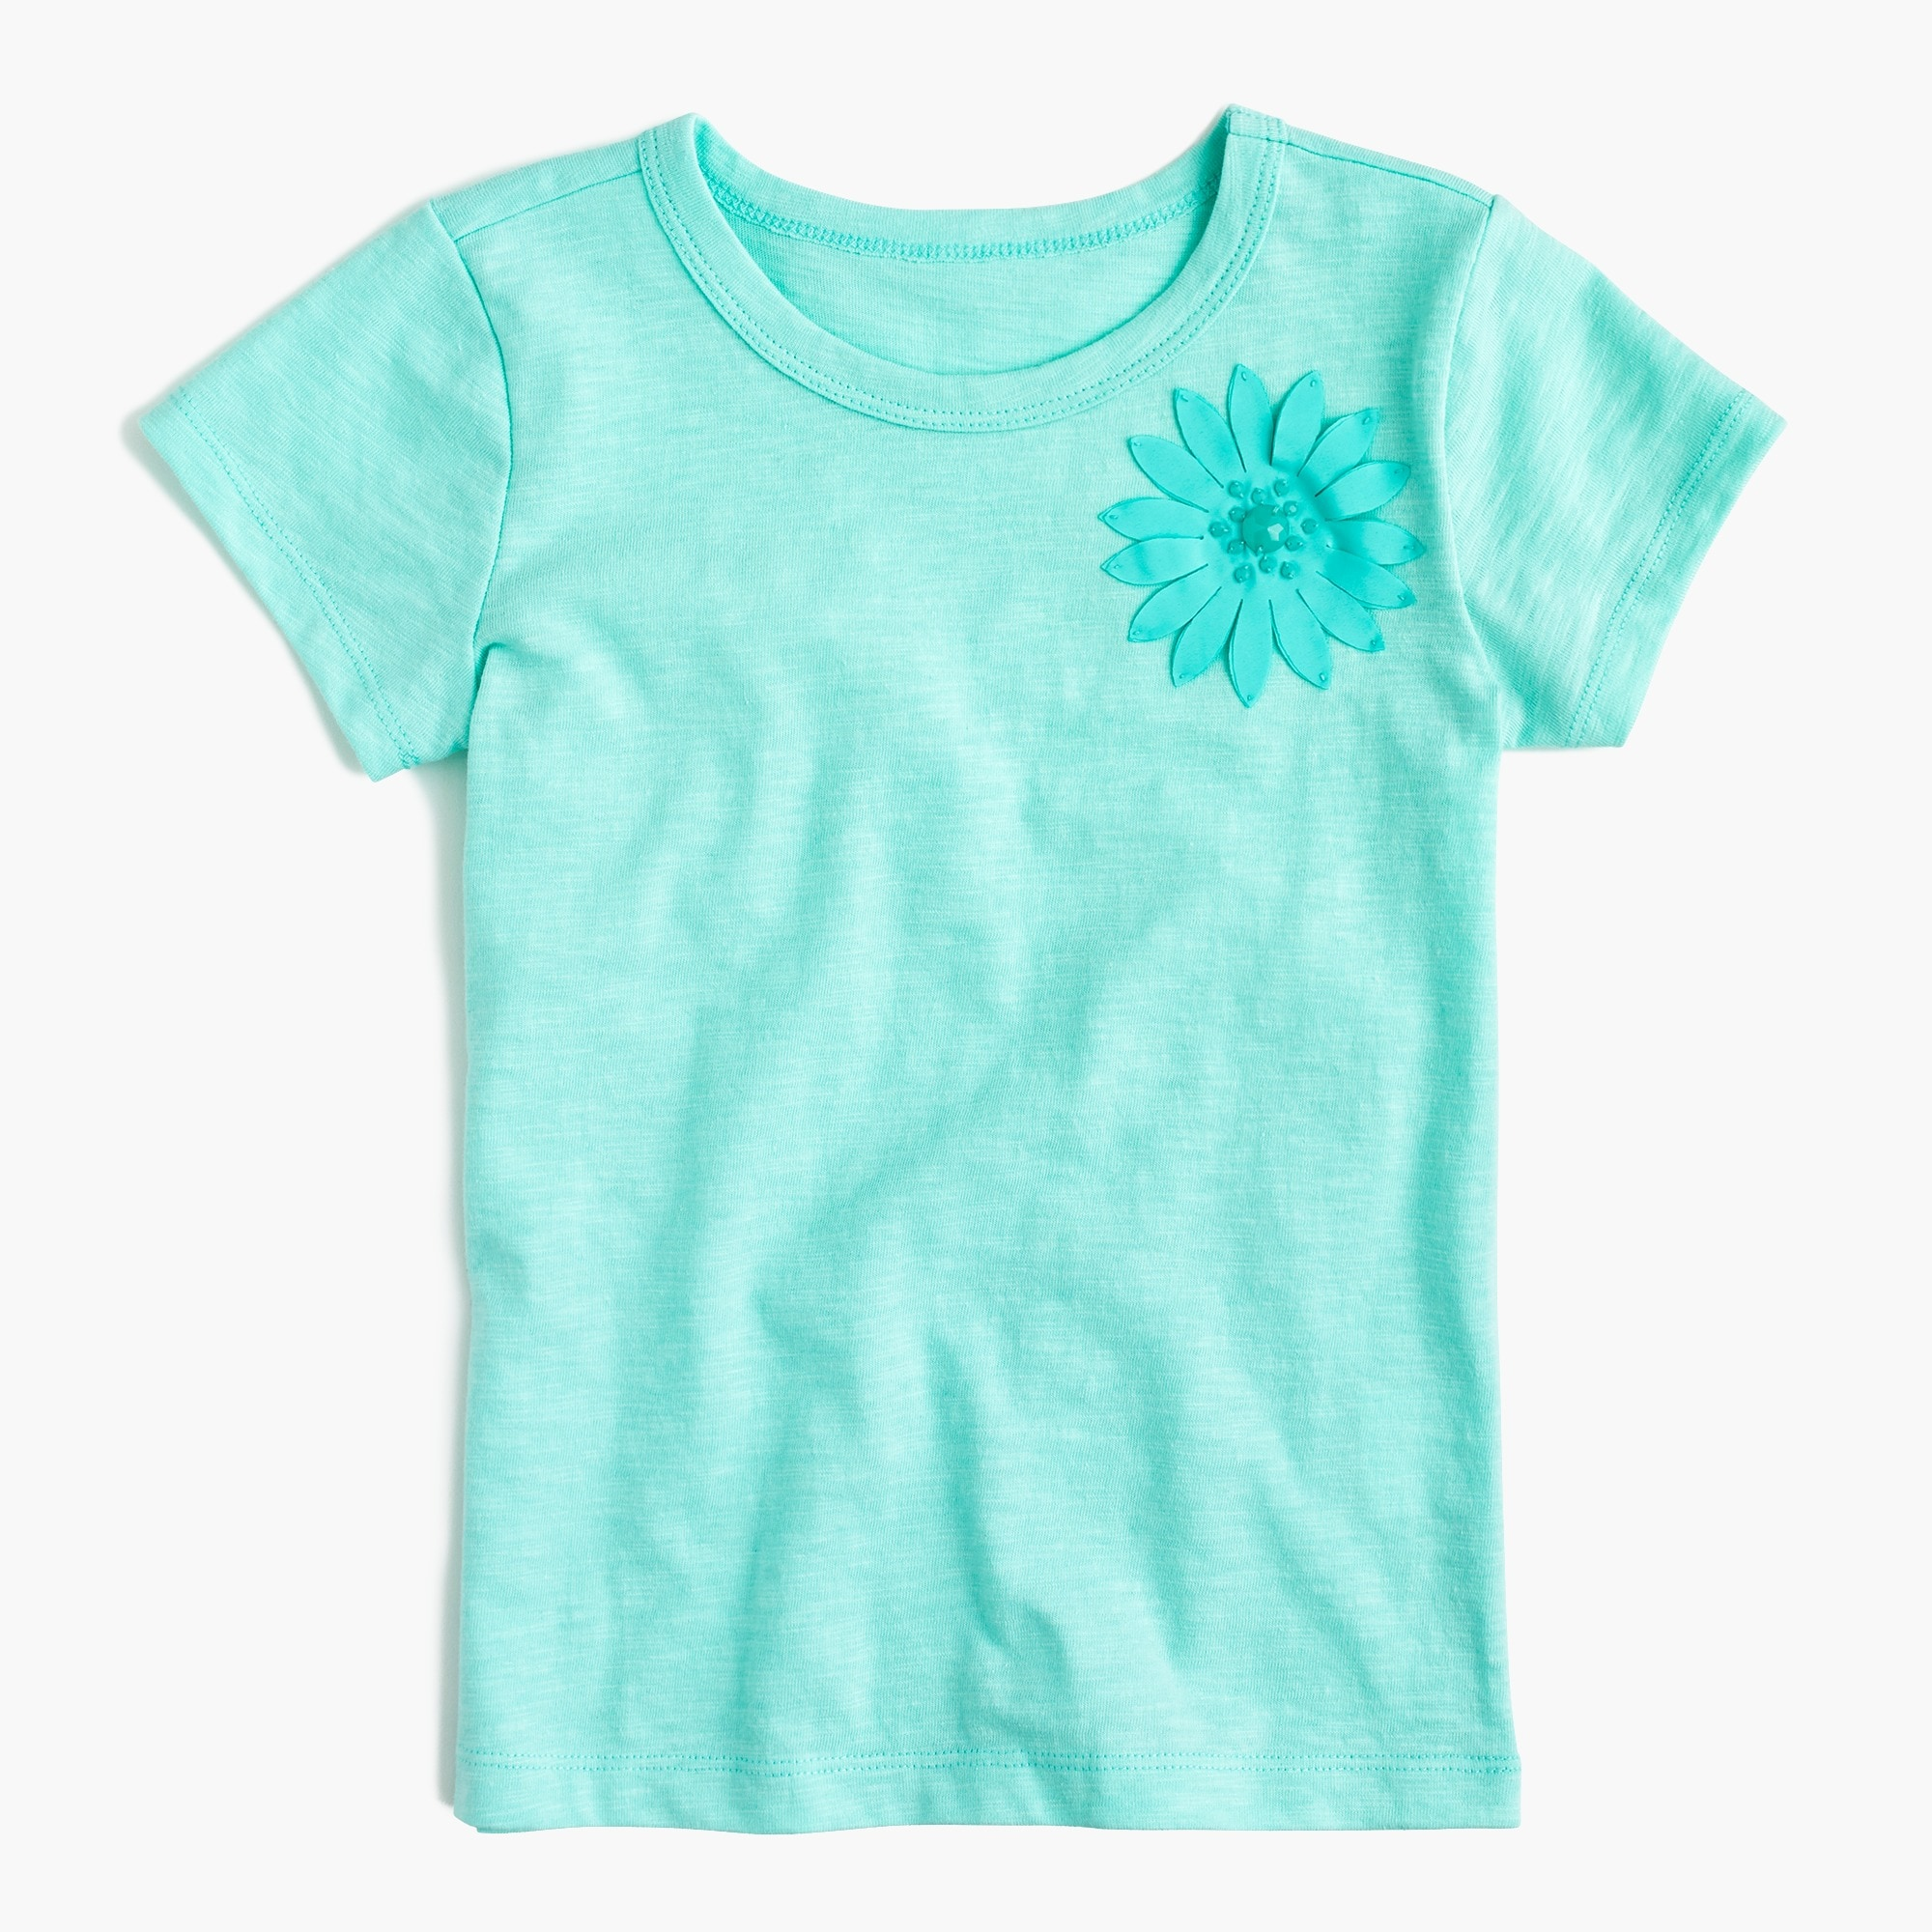 Girls' embellished flower T-shirt girl new arrivals c